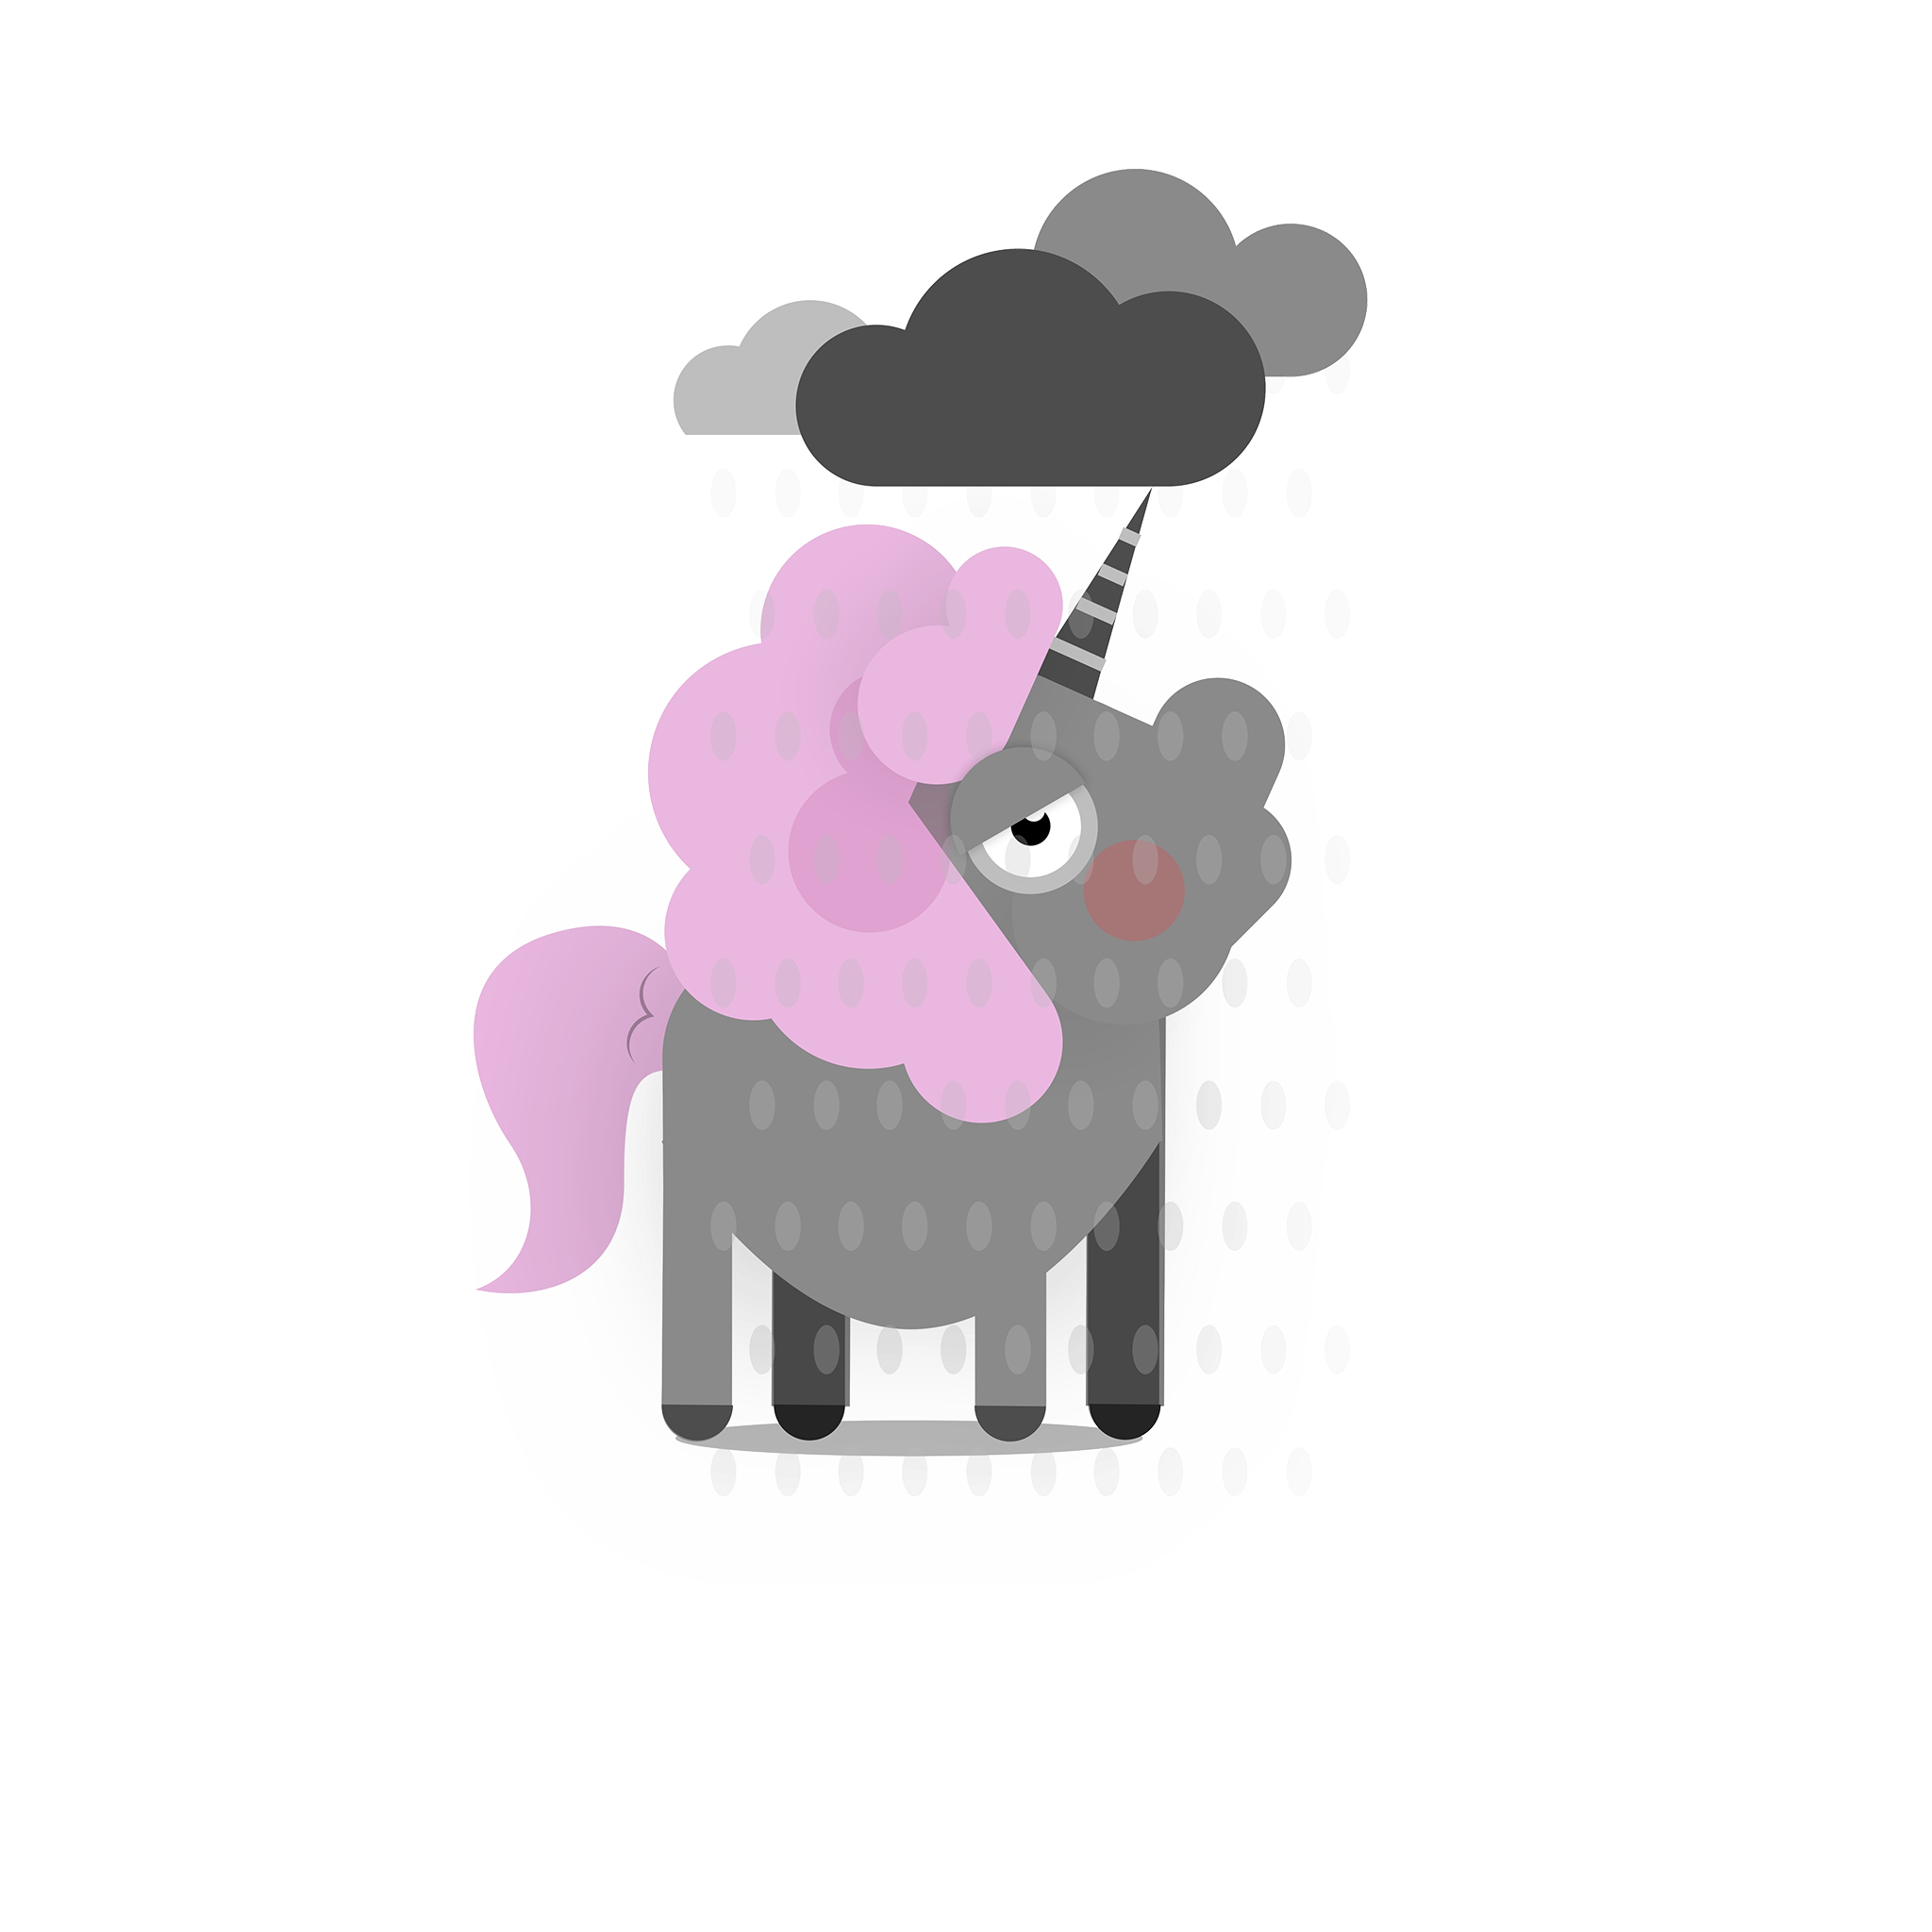 Bad Unicorn messages sticker-8